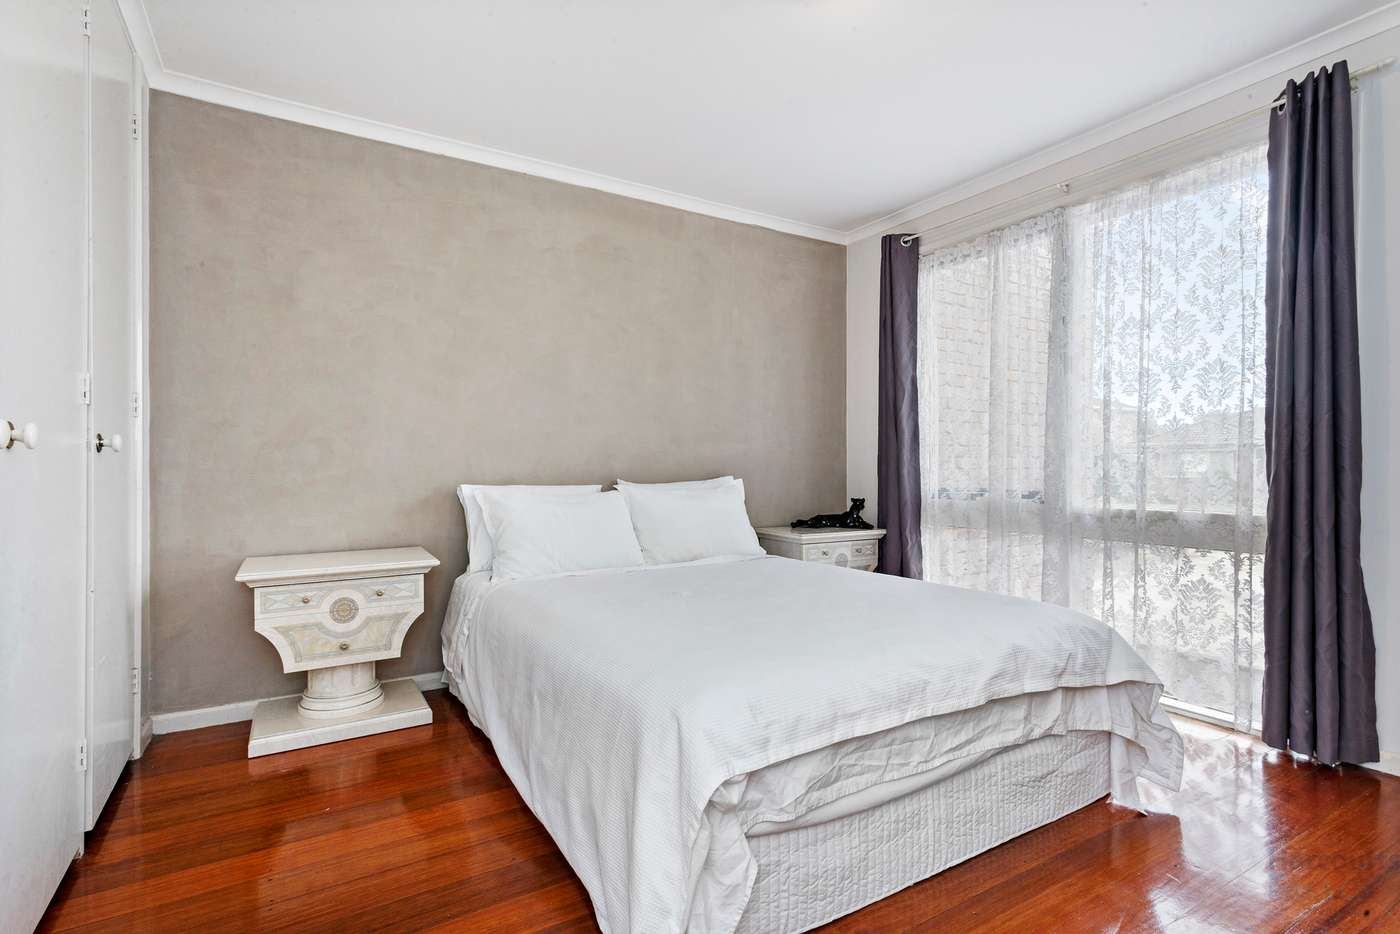 Sixth view of Homely house listing, 13 Touhey Avenue, Epping VIC 3076